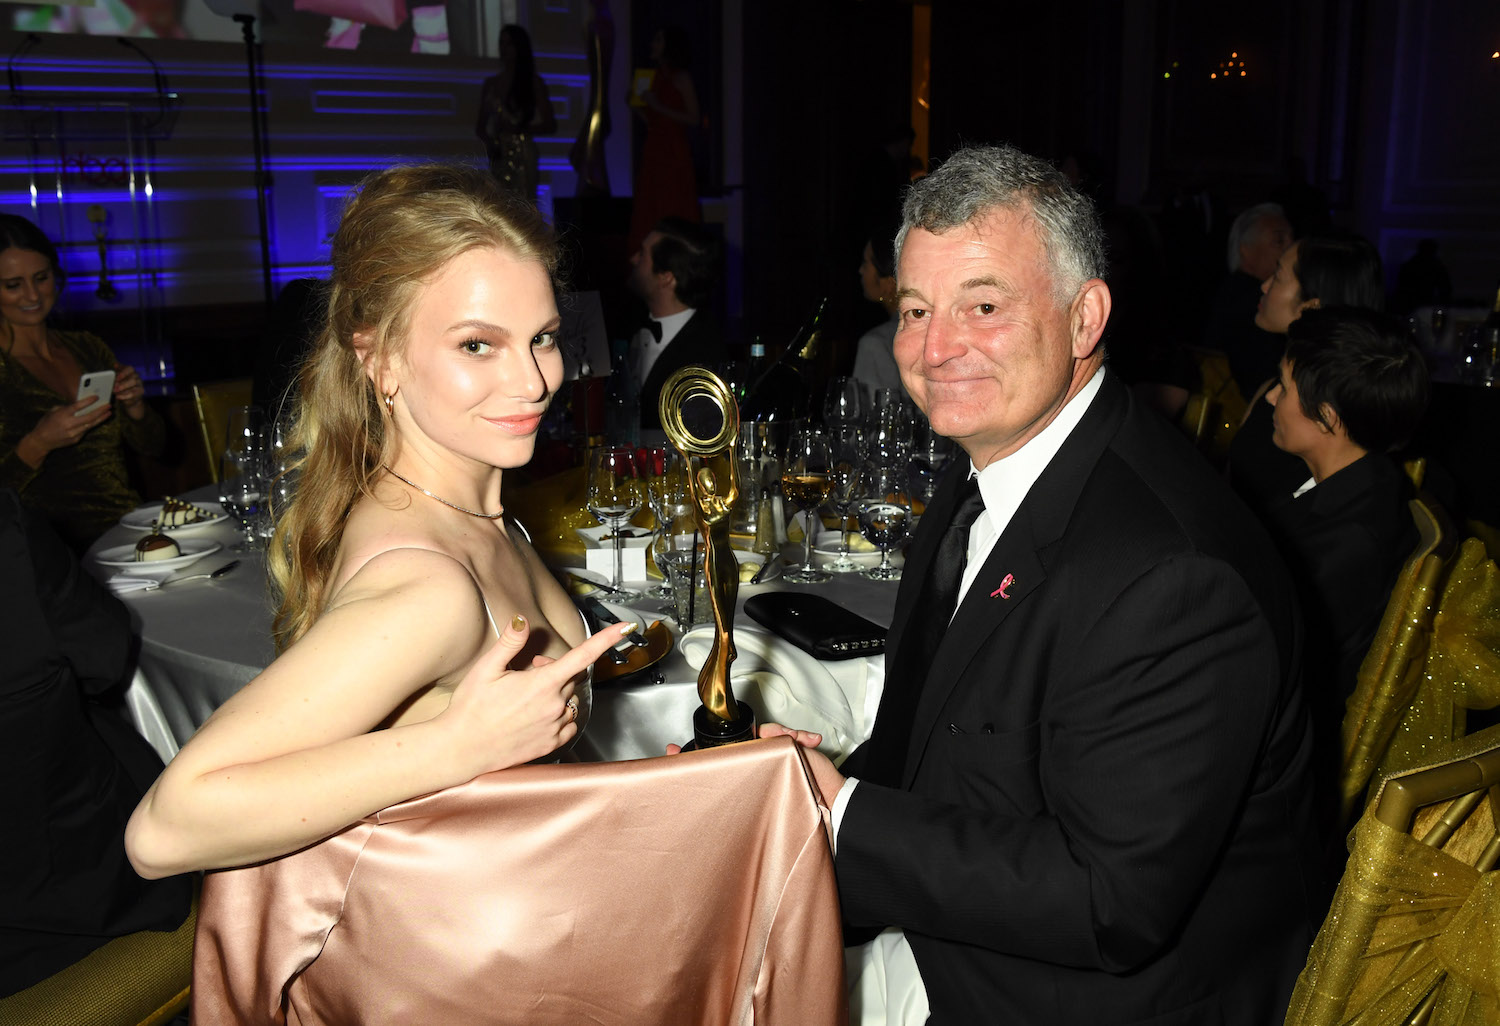 Danielle Lauder, William P. Lauder, hollywood beauty awards